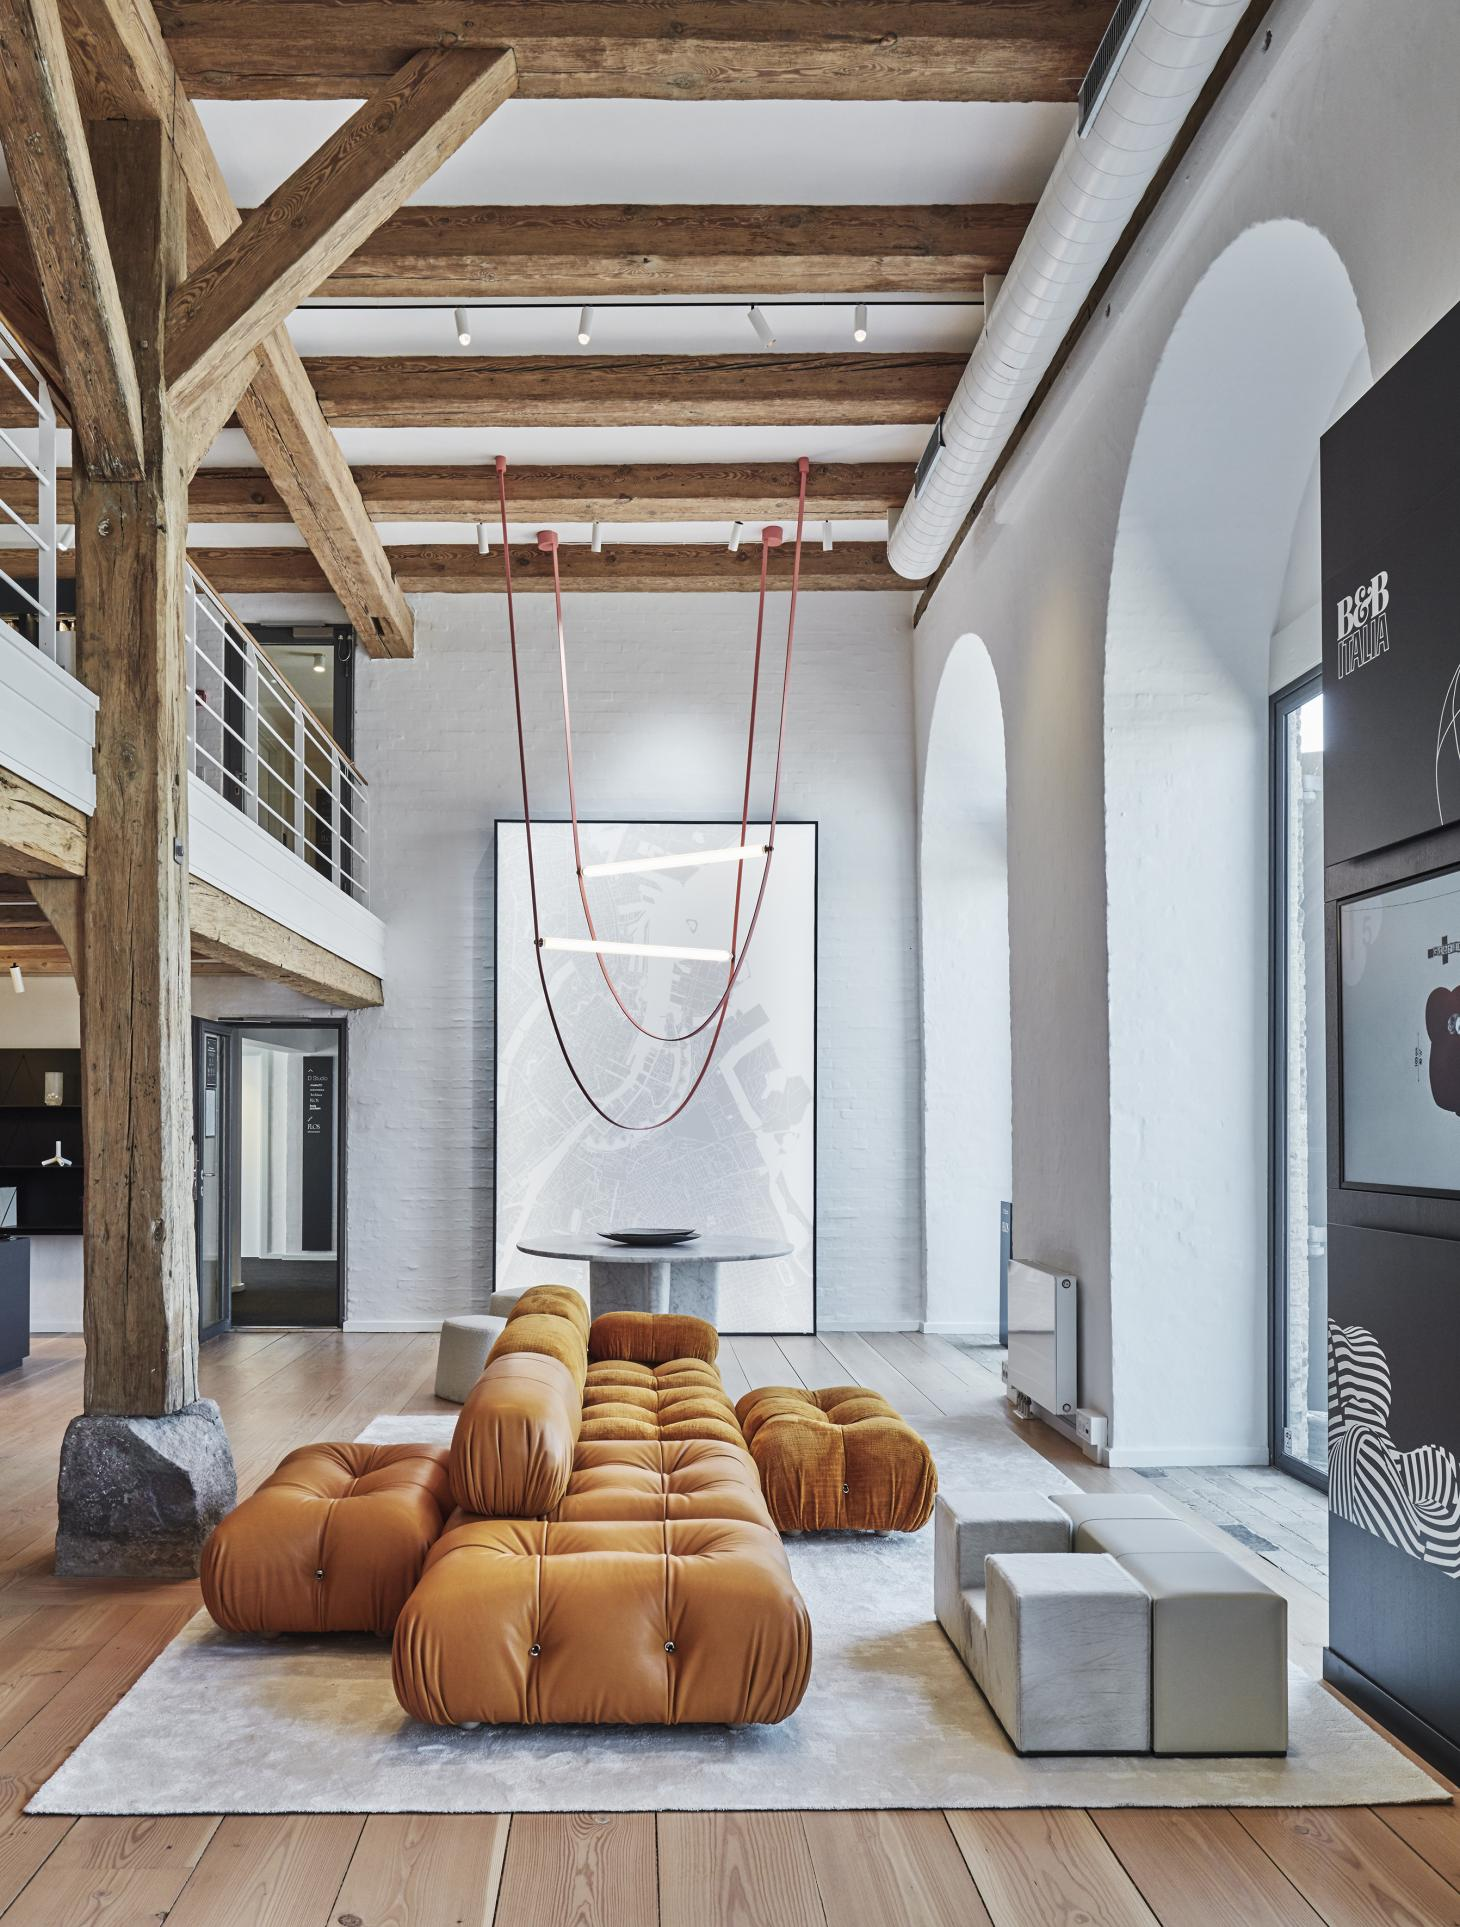 The showroom's ground floor with the Camaleonda modular sofa by Mario Bellini in caramel coloured leather and fabric